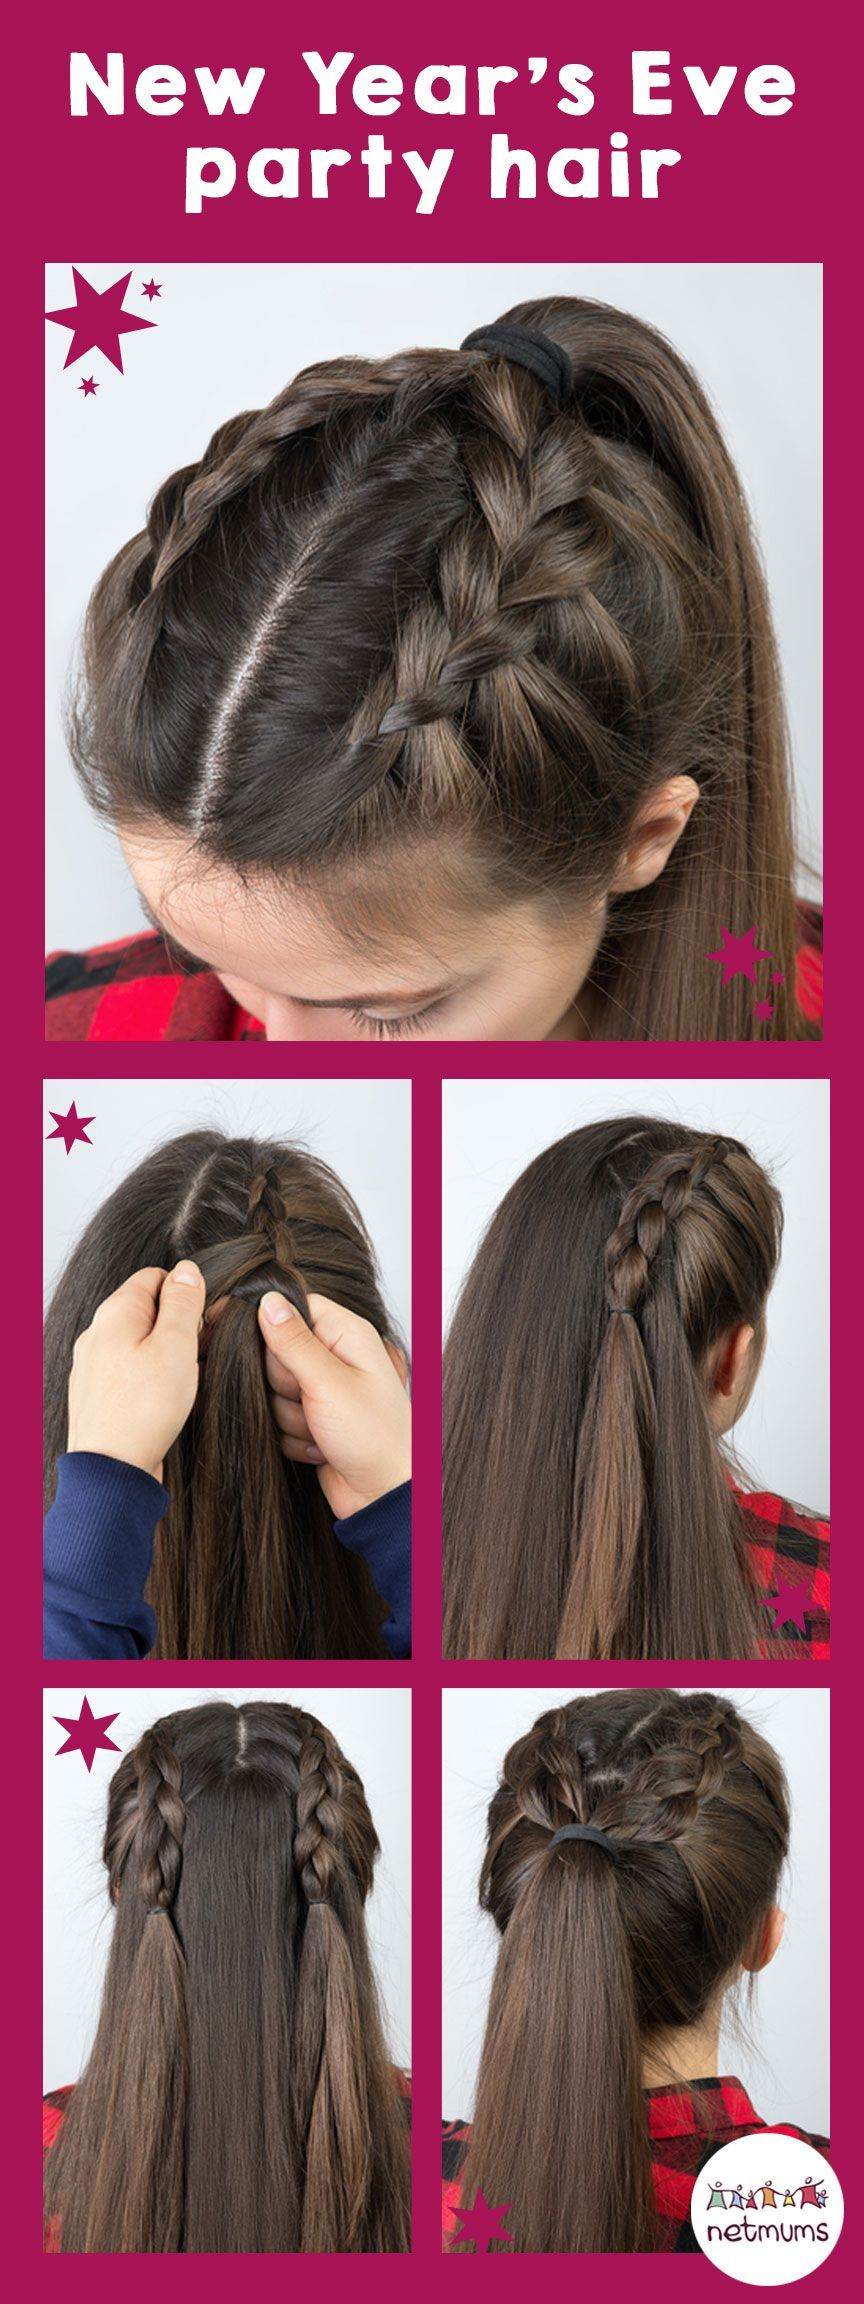 New Year S Eve Hair Ideas If You Re Looking For Hair Ideas For New Year S Eve Why Not Try This Easy Tutorial New Year S Eve Hair Hair Styles Long Hair Styles